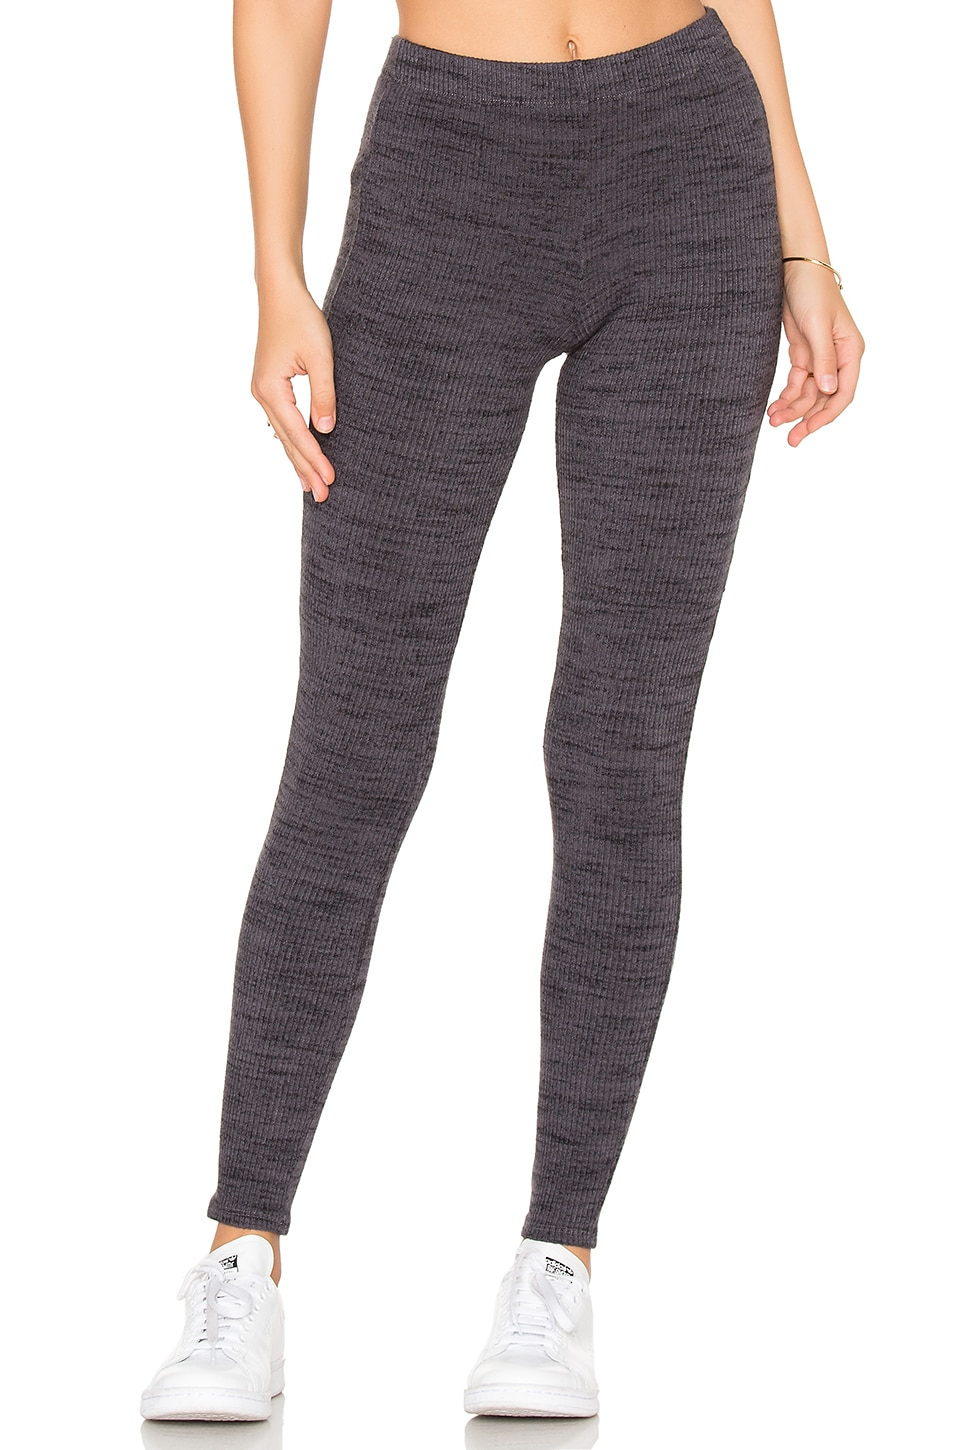 Splendid Brushed Tri-Blend Legging in Asphalt